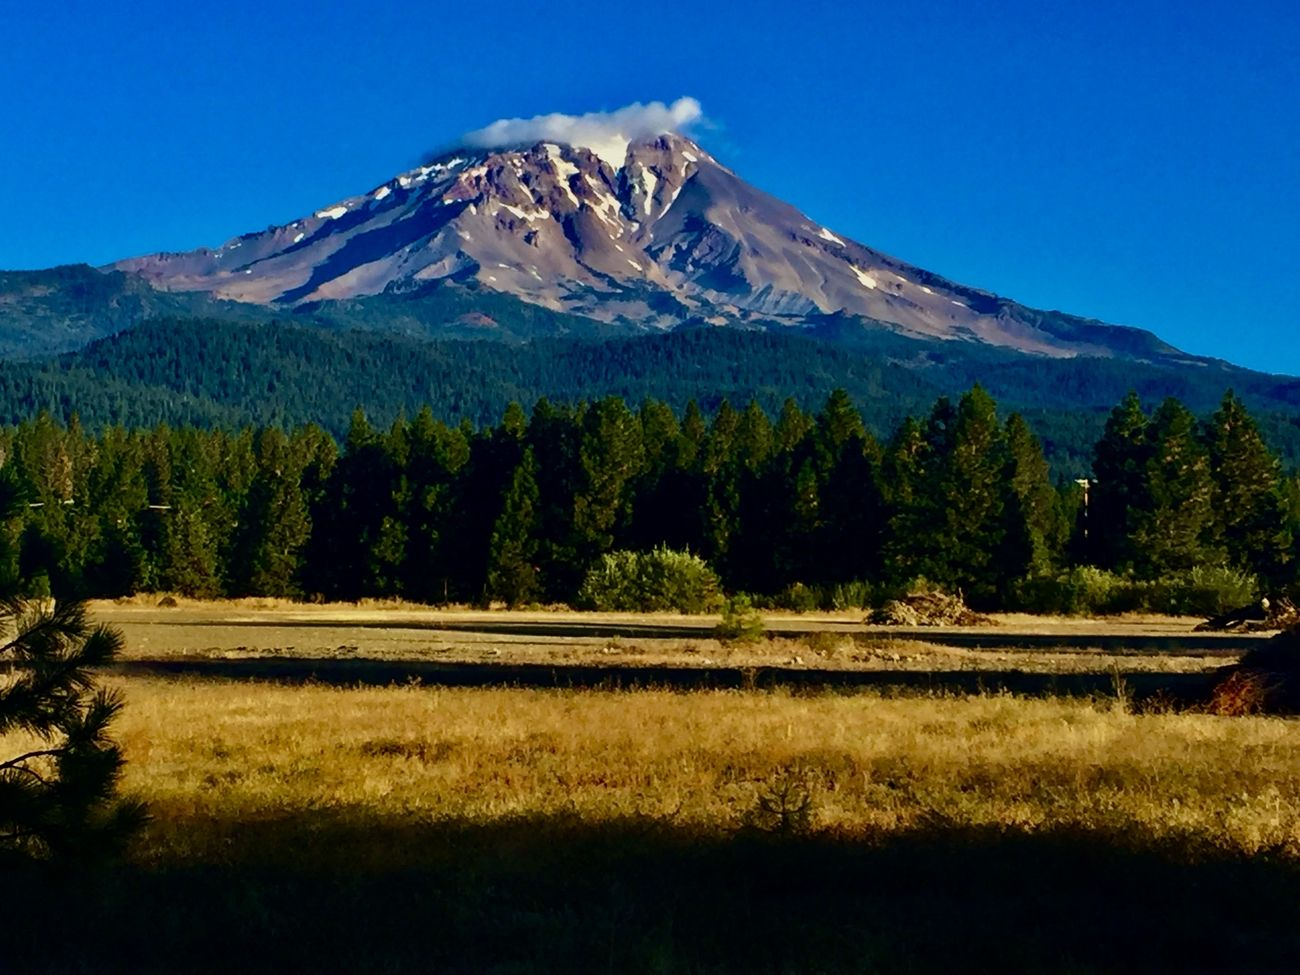 Mt. Shasta taken from the old mill in McCloud, California